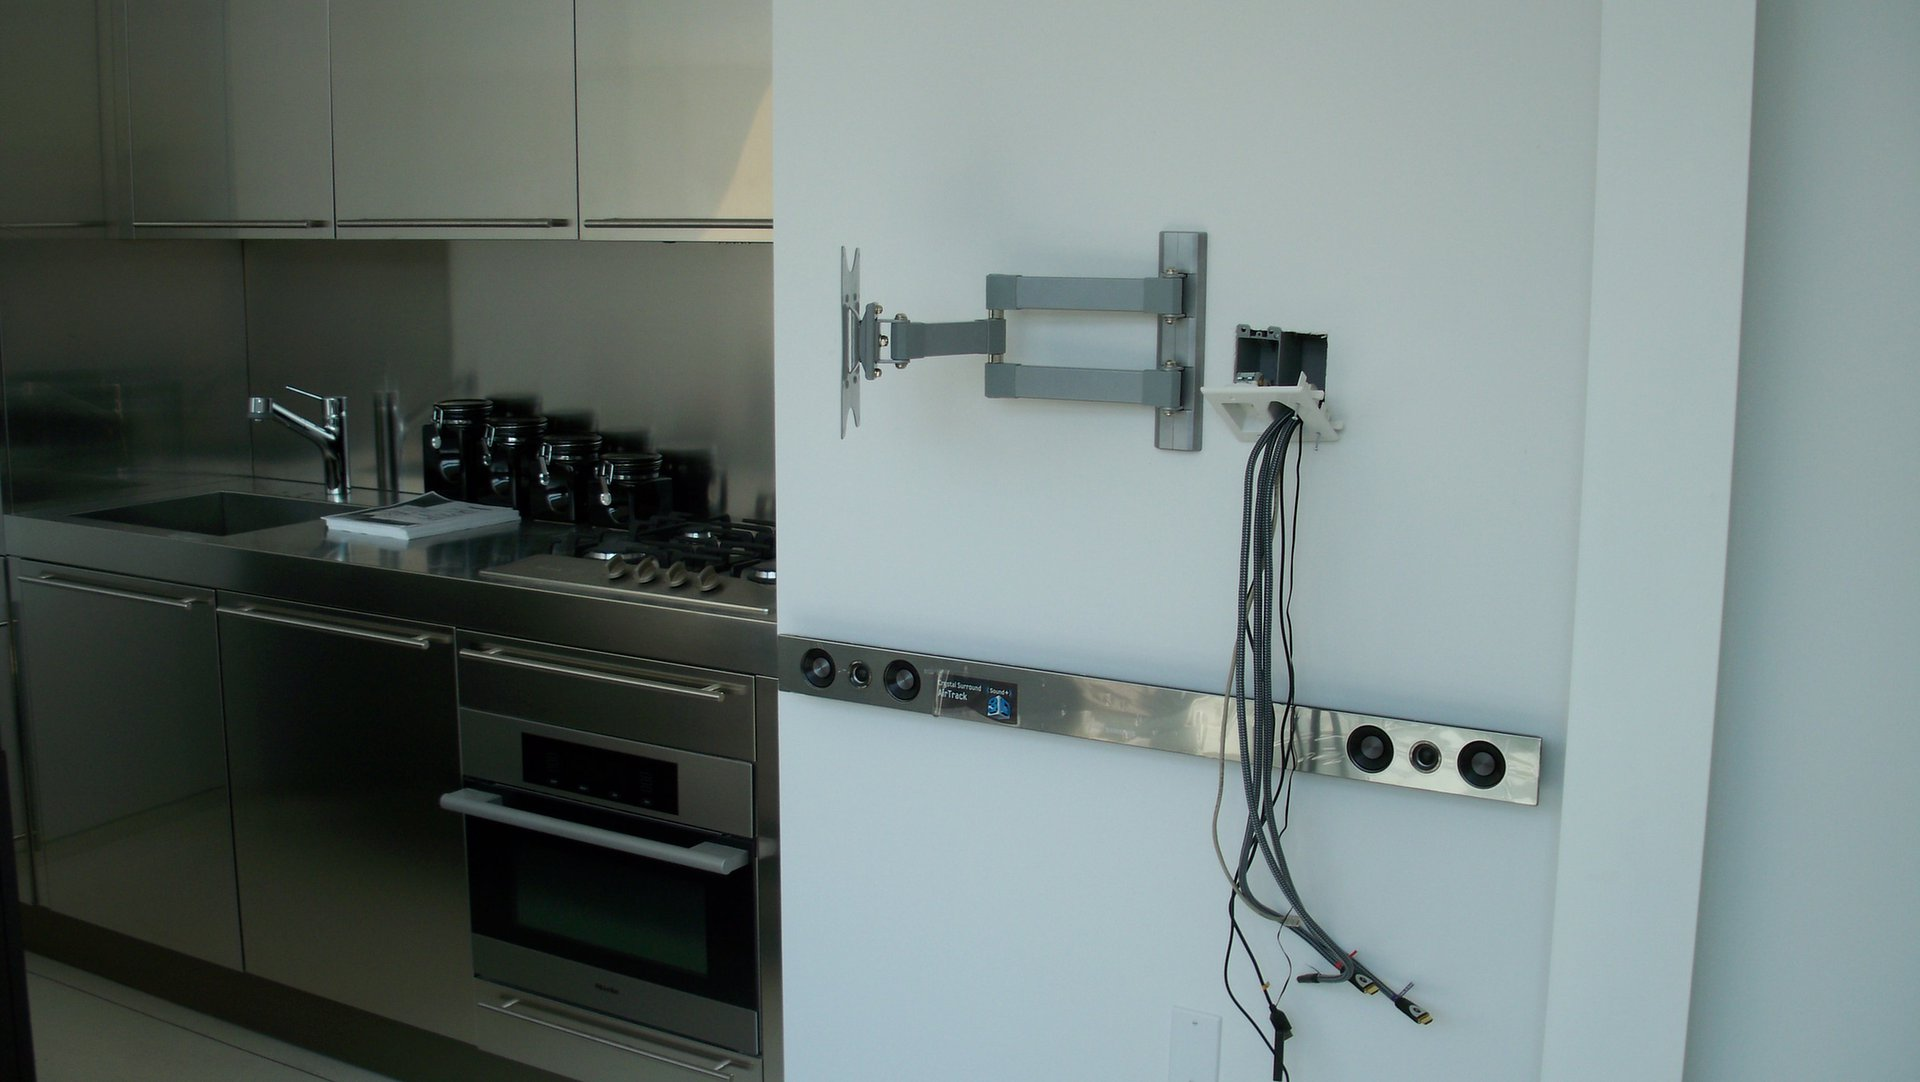 KITCHEN TV & SOUND BAR